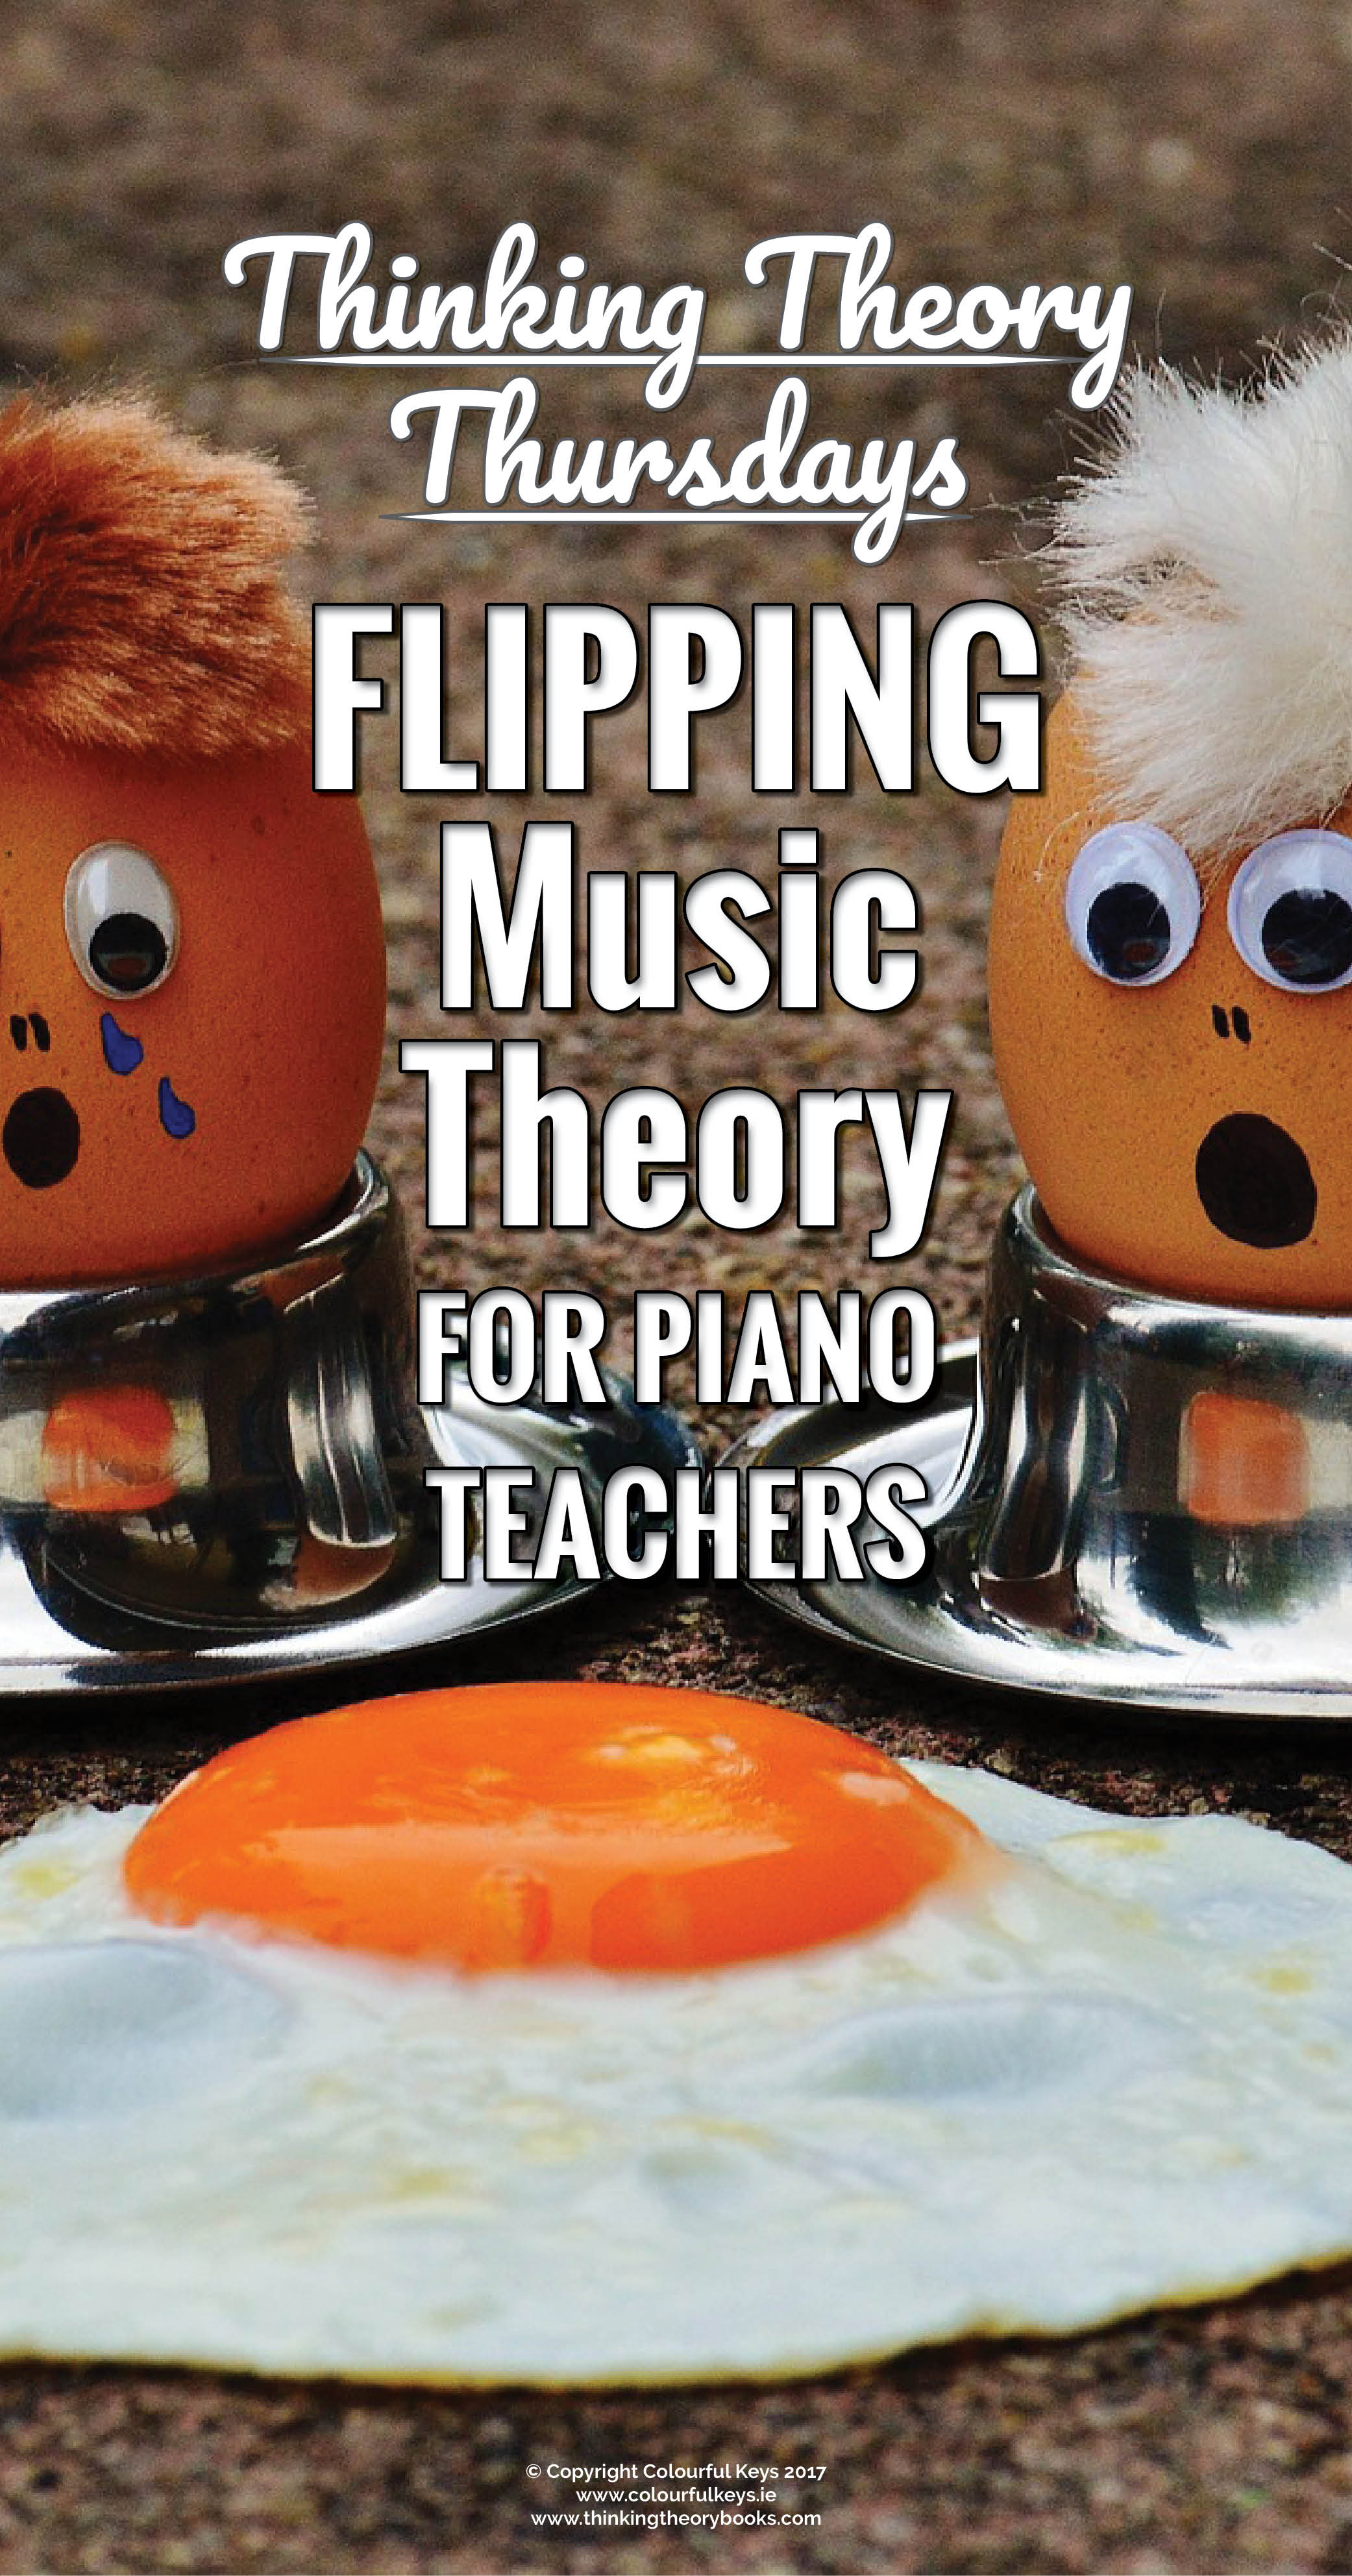 Flipping music theory for piano teachers and freeing up lesson time.